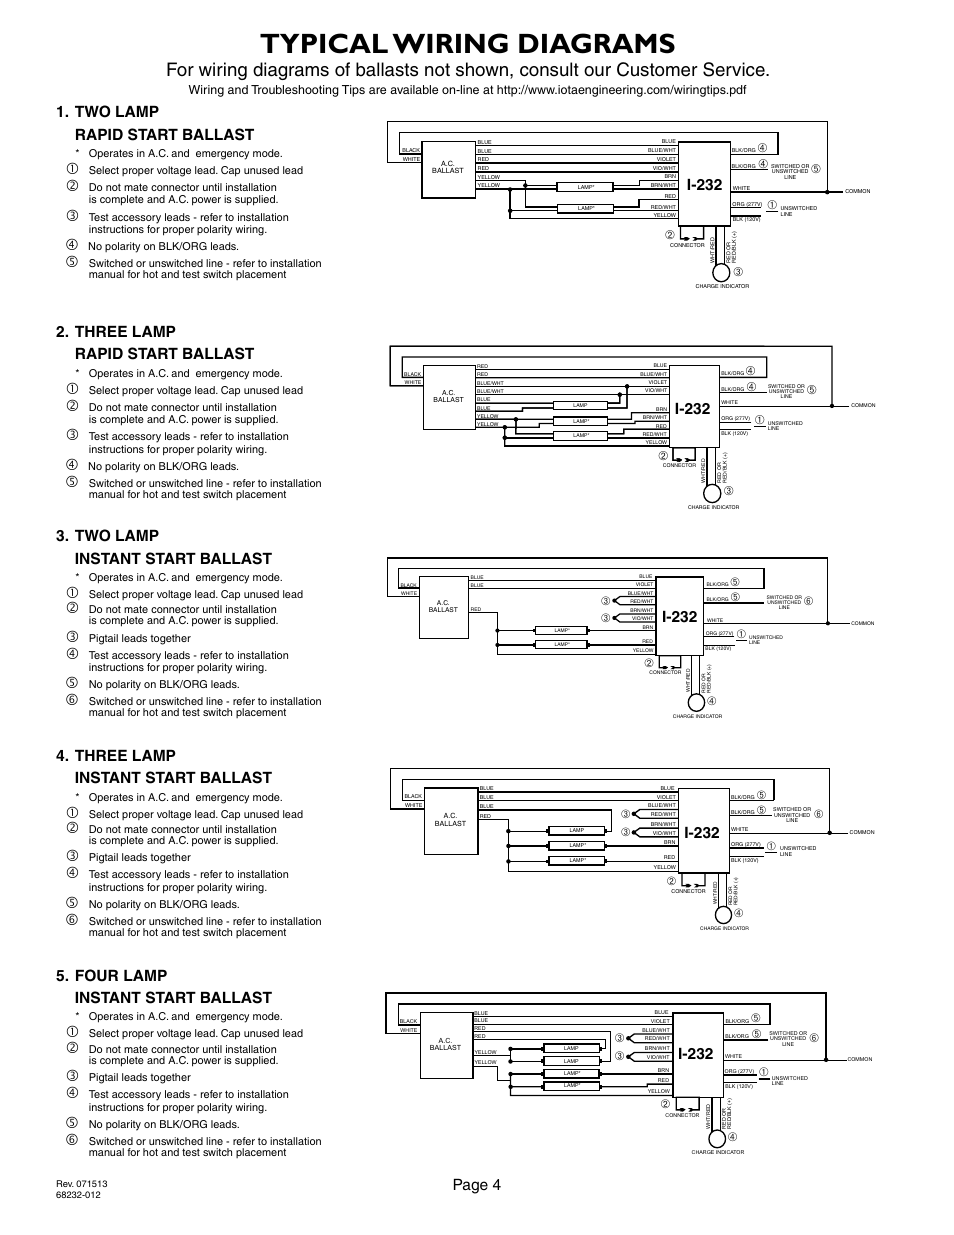 Typical wiring diagrams, Page 4, I-232 | IOTA I-232 User ...